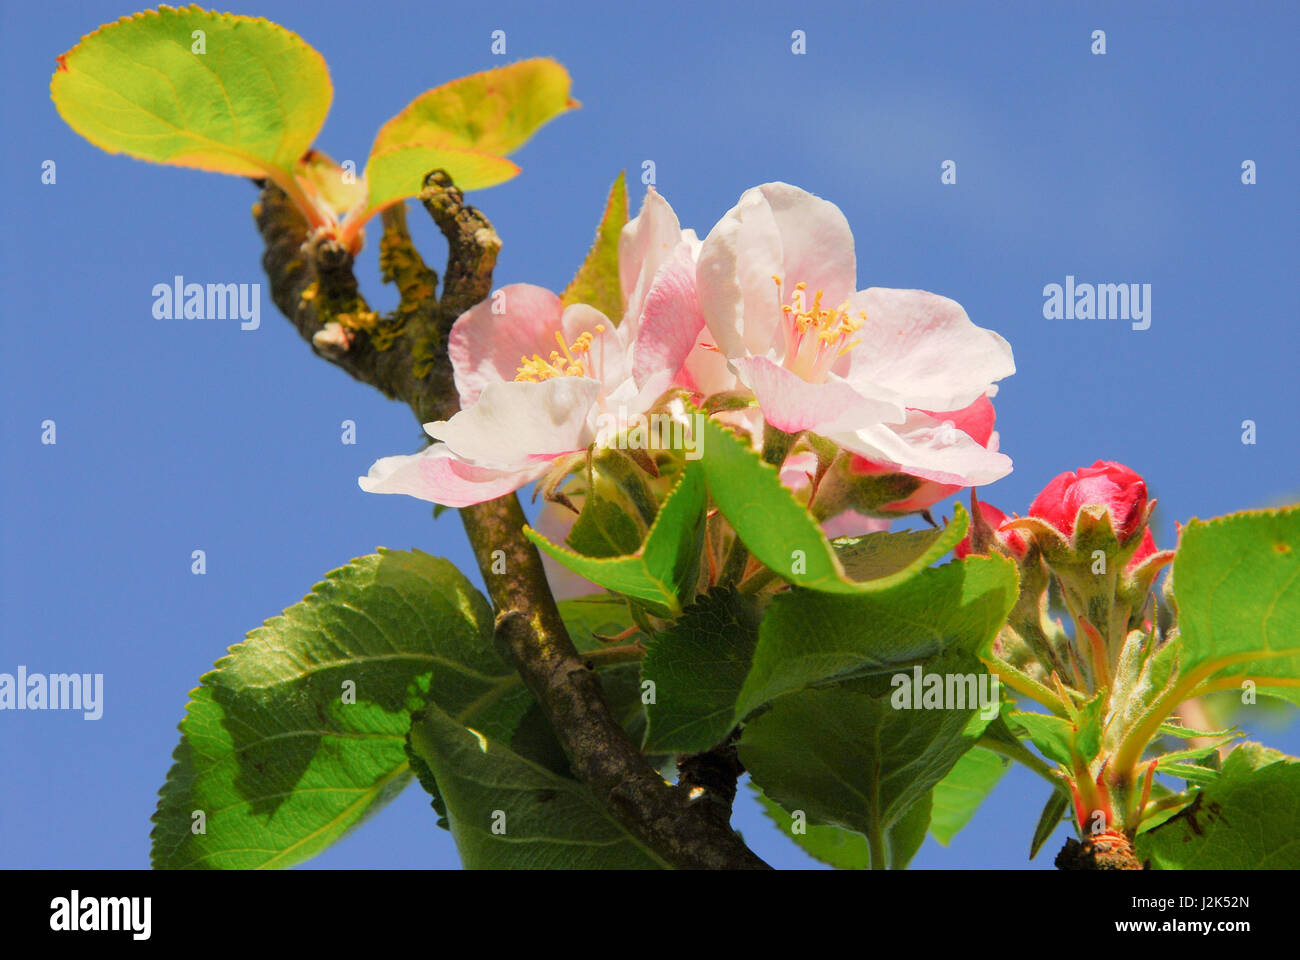 Portland, Dorset, UK. 29th April, 2017. Apple blossom opens against a clear, blue sky in a sunny Portland garden - Stock Image